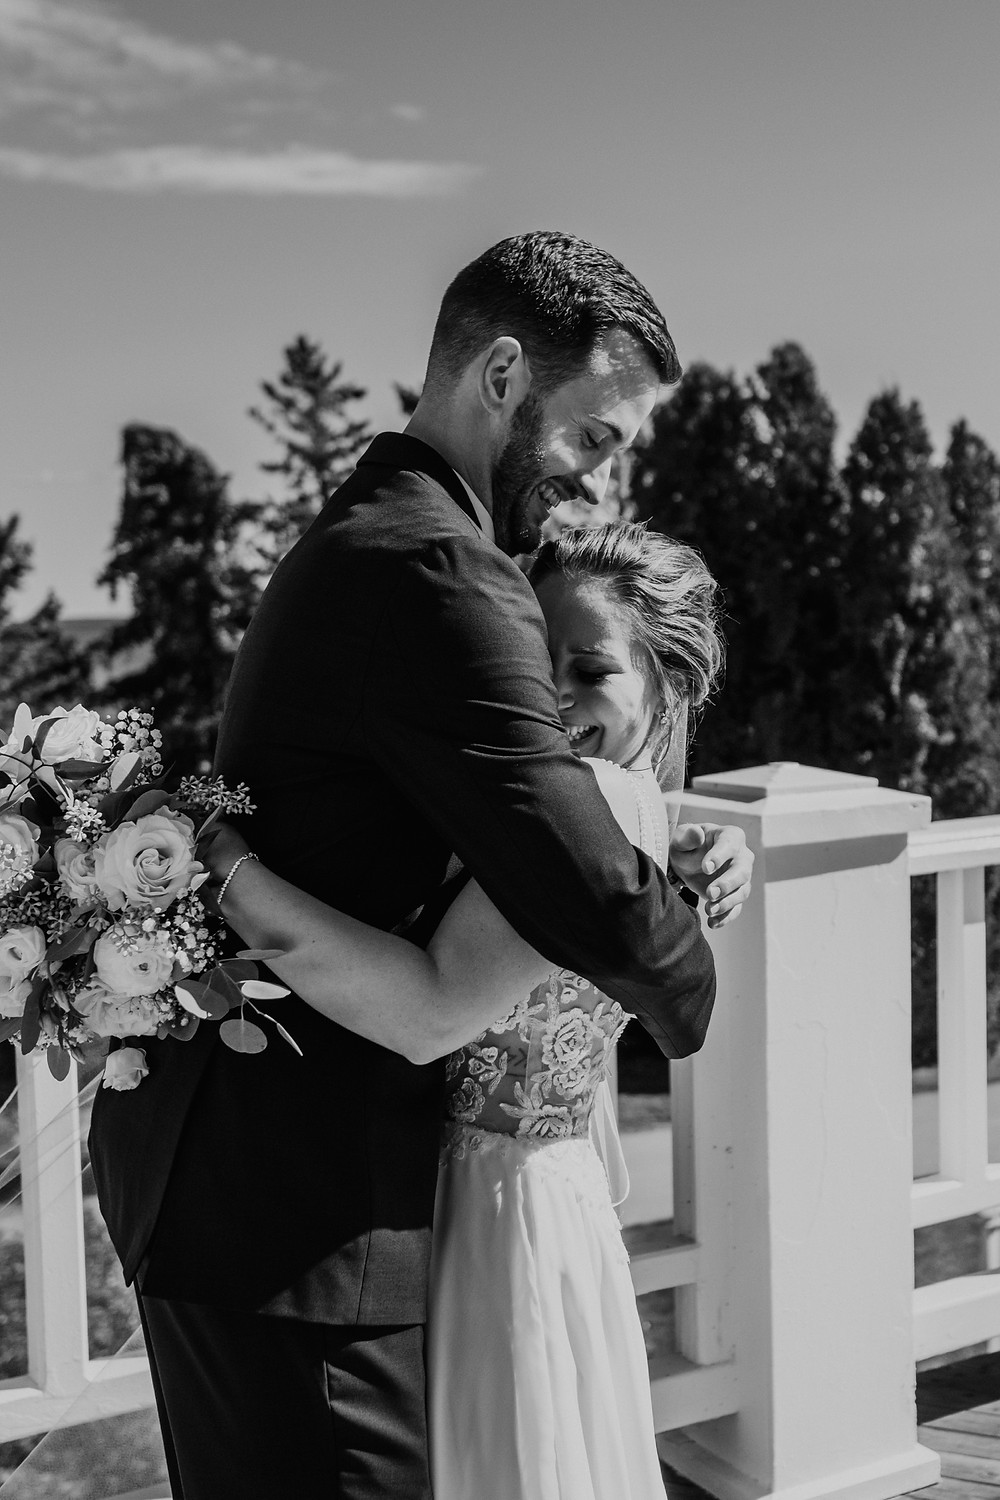 First look with bride and groom. Photographed by Nicole Leanne Photography.